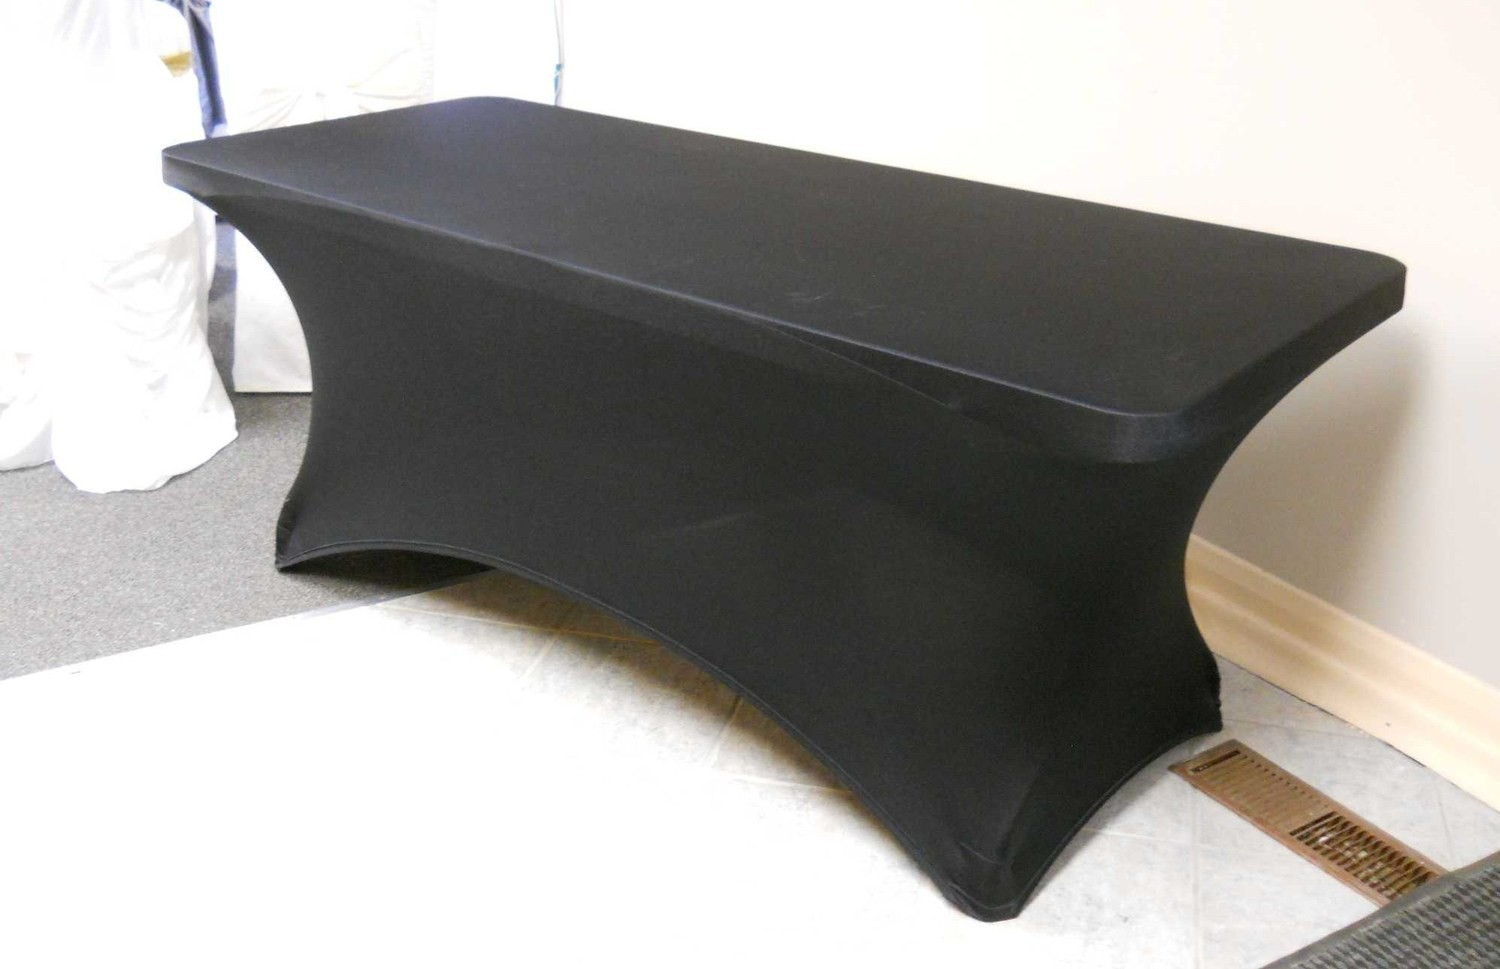 """Spandex Table Cover (for 72"""" x 30"""" x 30"""" Table, Black)"""